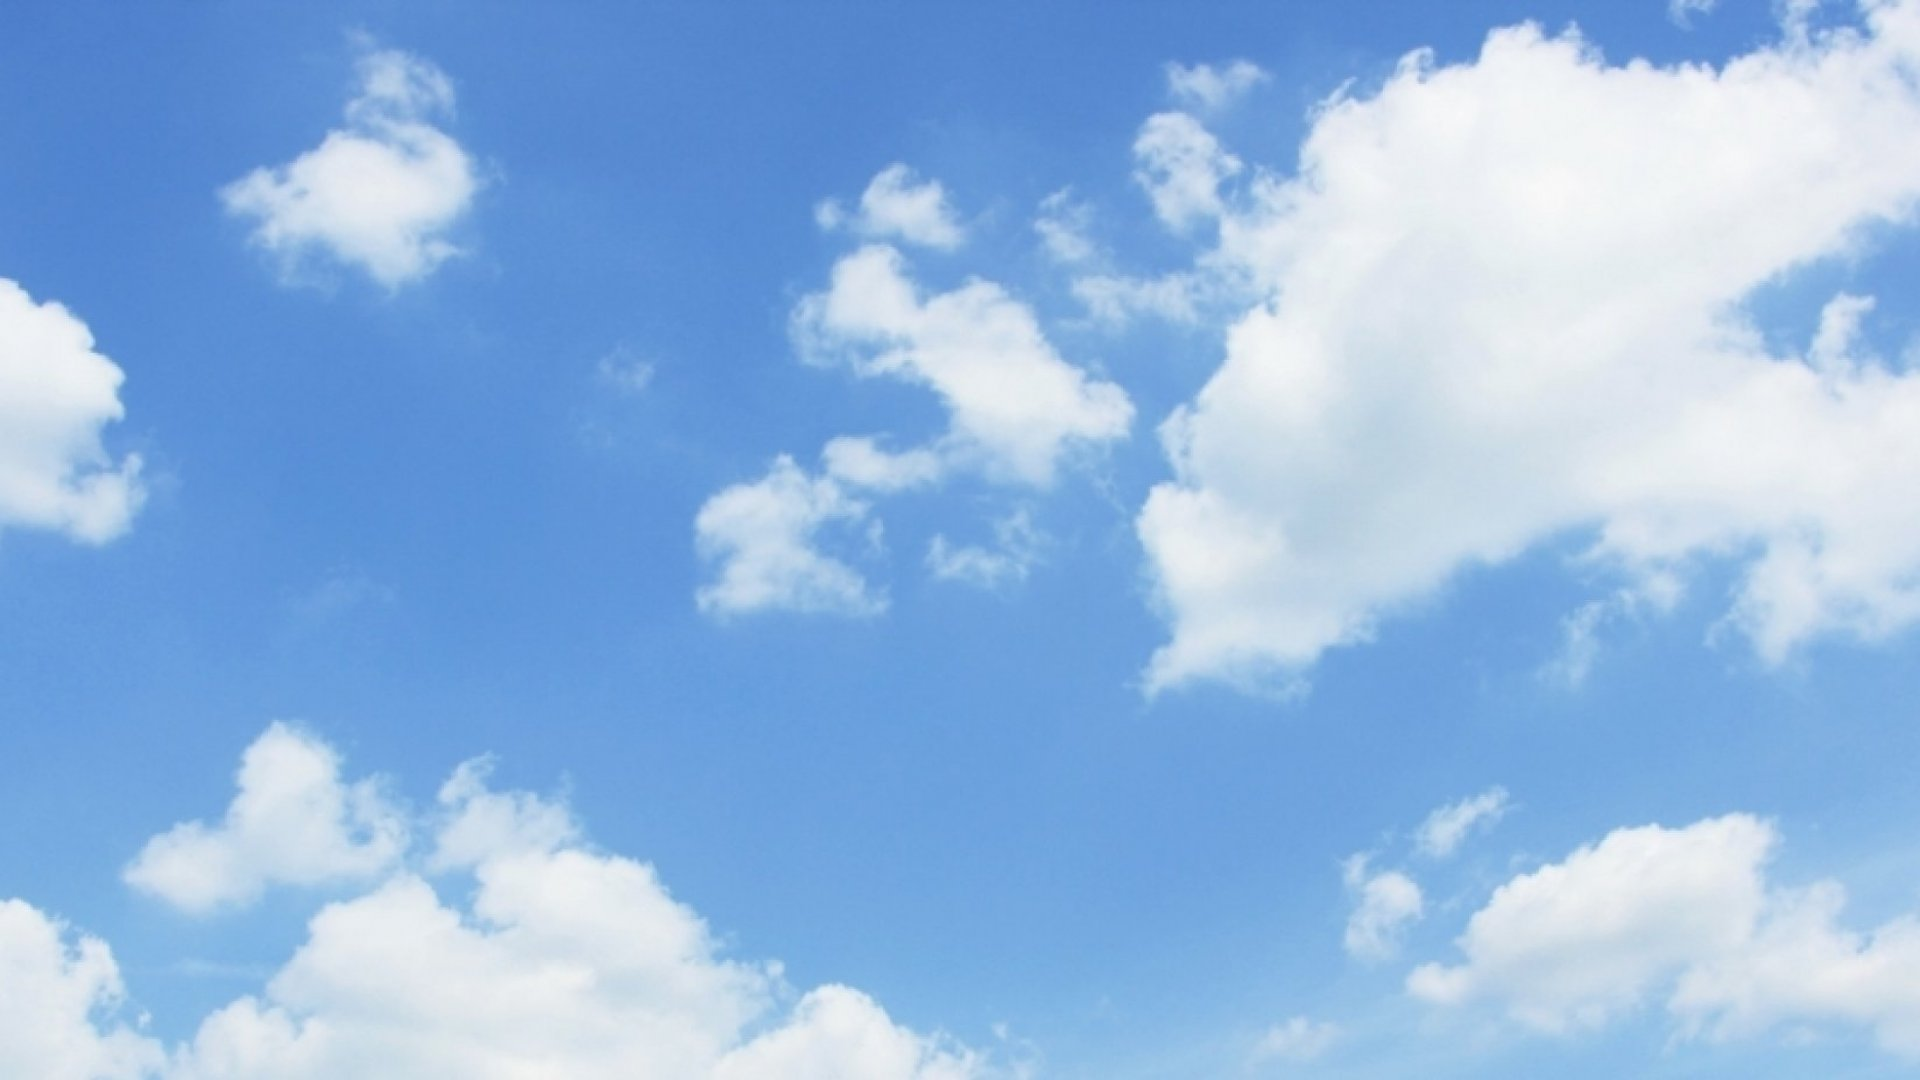 7 Cloud-Based Tools to Take Your Business to the Next Level